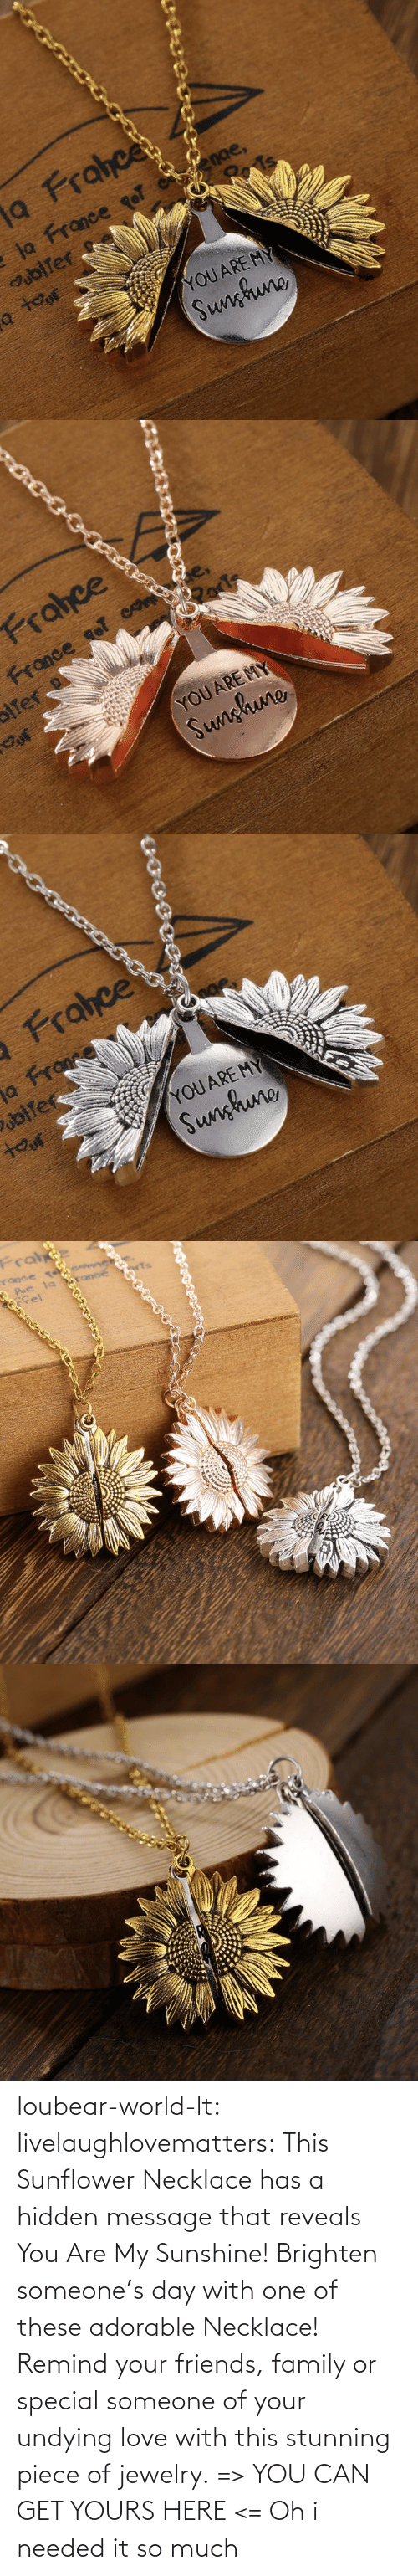 Umblr: loubear-world-lt: livelaughlovematters:   This Sunflower Necklace has a hidden message that reveals You Are My Sunshine! Brighten someone's day with one of these adorable Necklace! Remind your friends, family or special someone of your undying love with this stunning piece of jewelry. => YOU CAN GET YOURS HERE <=    Oh i needed it so much